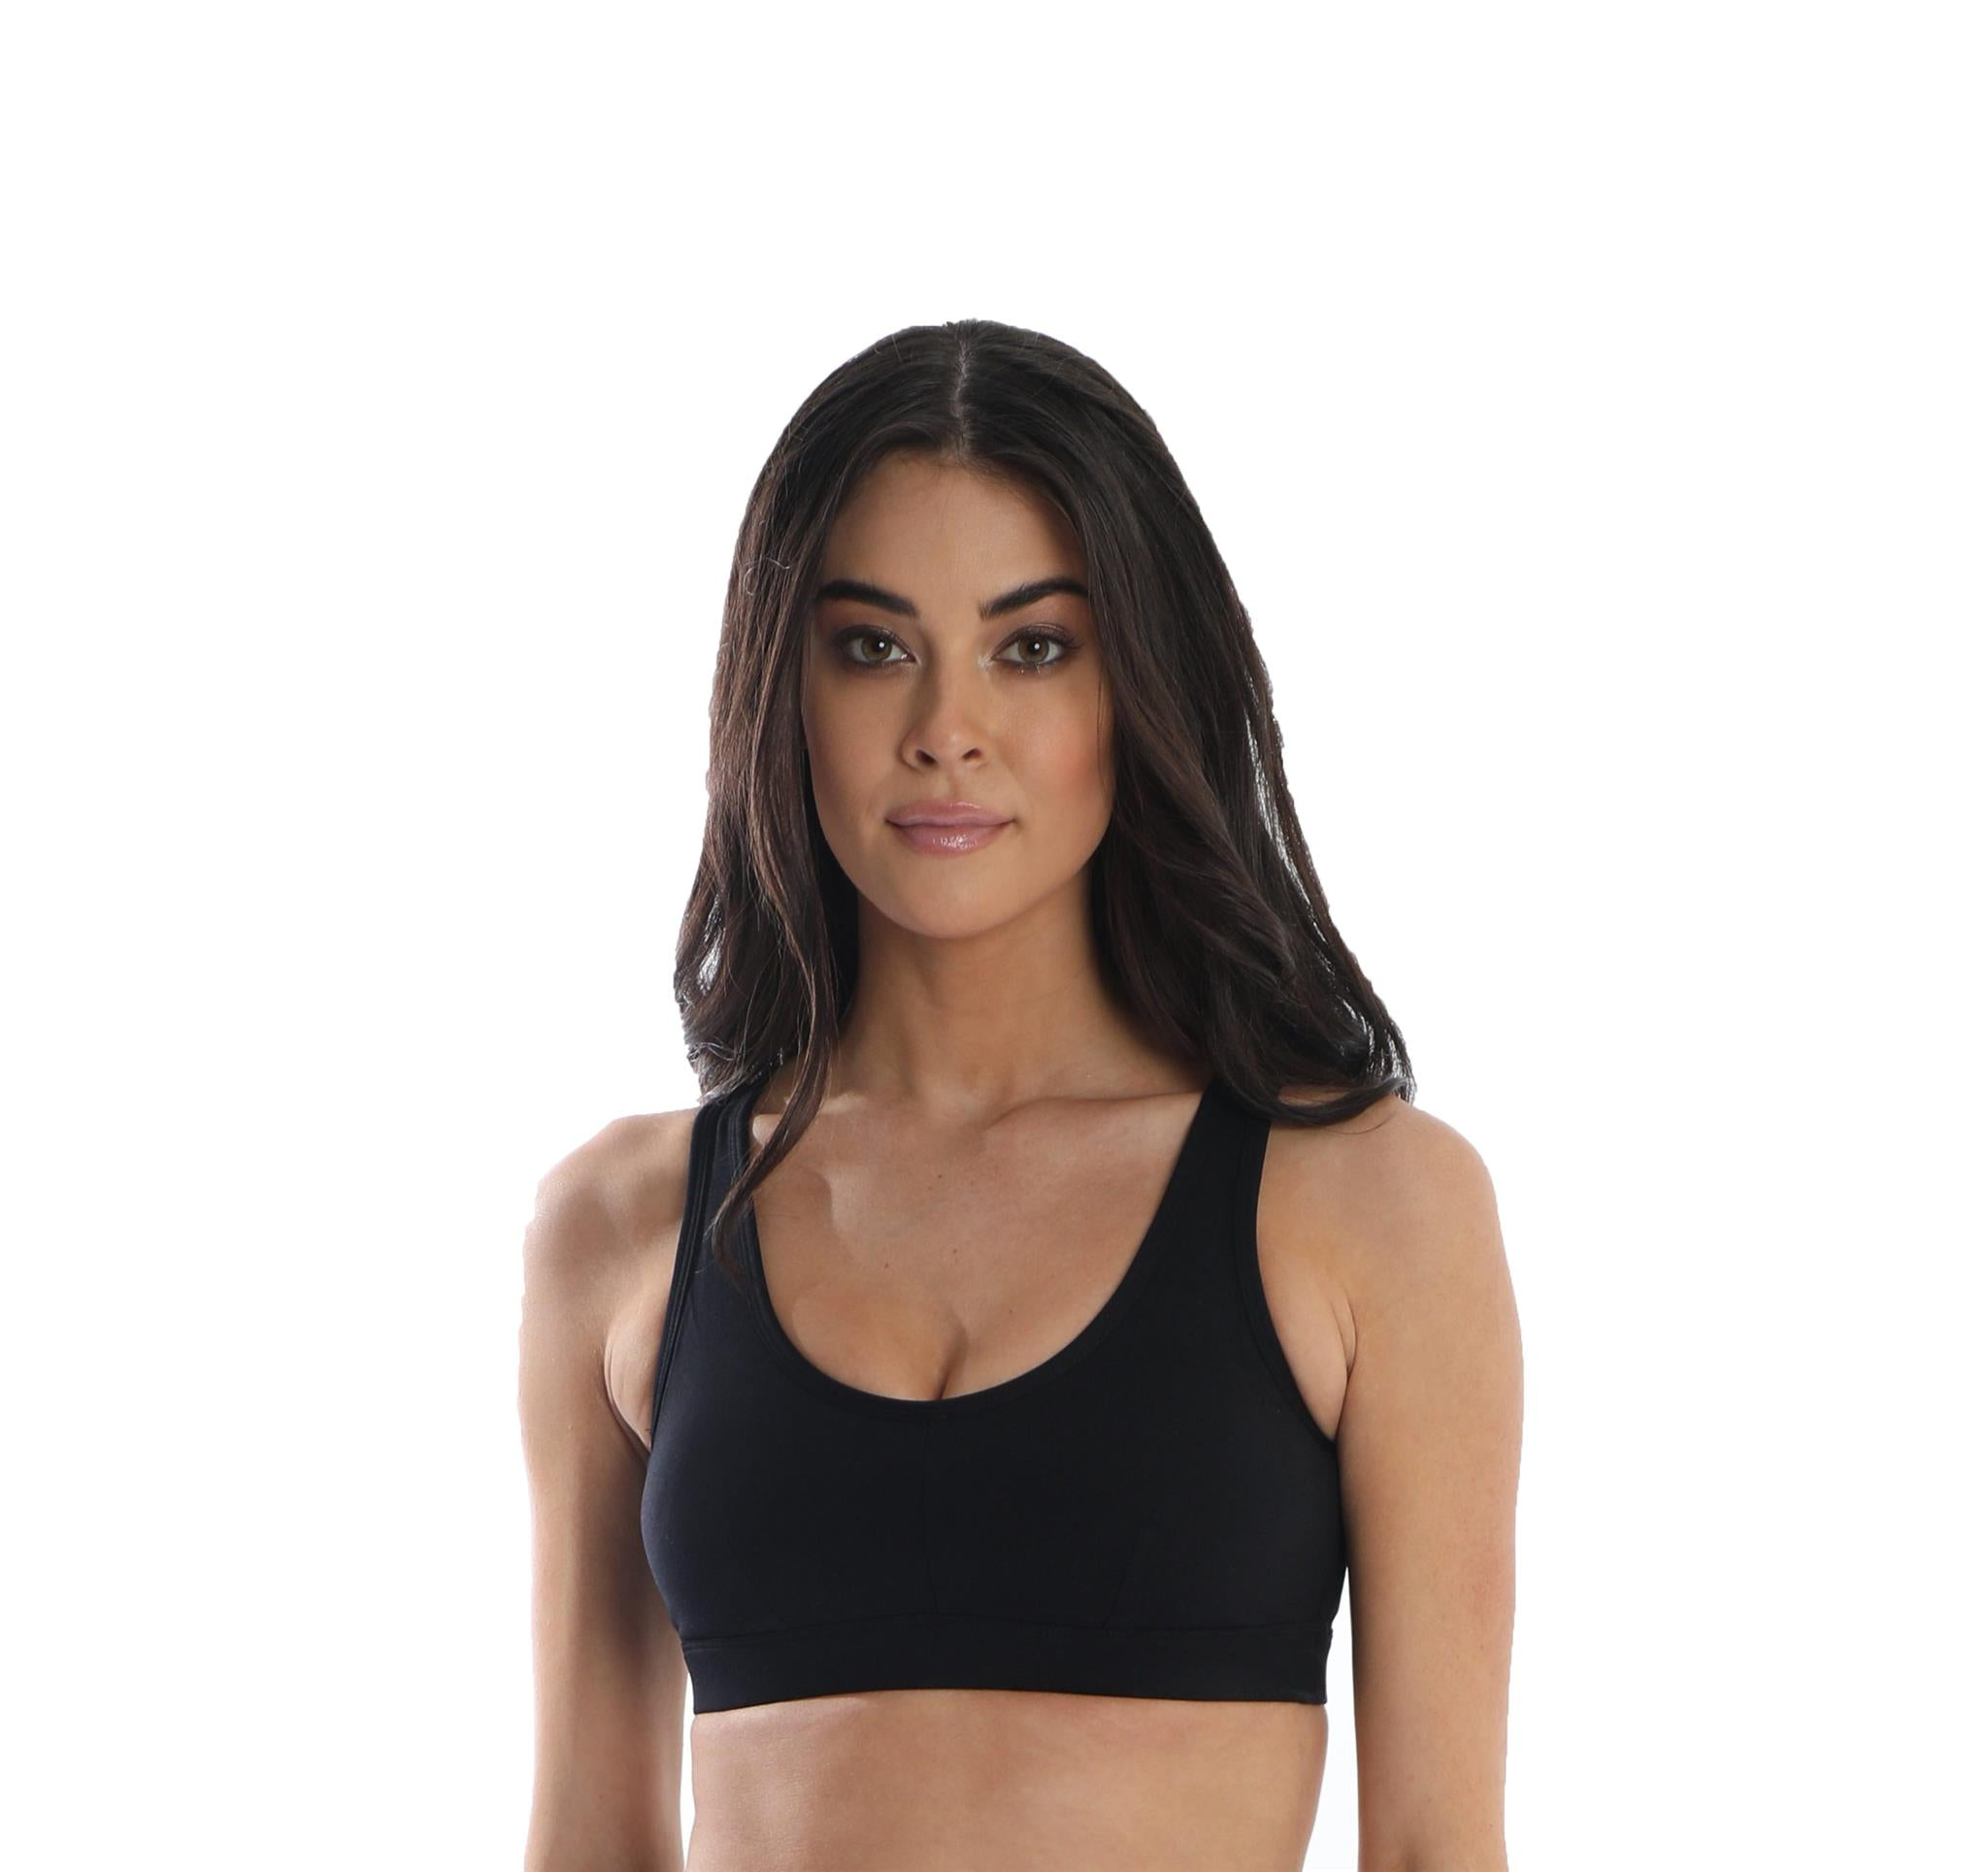 Trendsetter Women's Sports Bra - Black